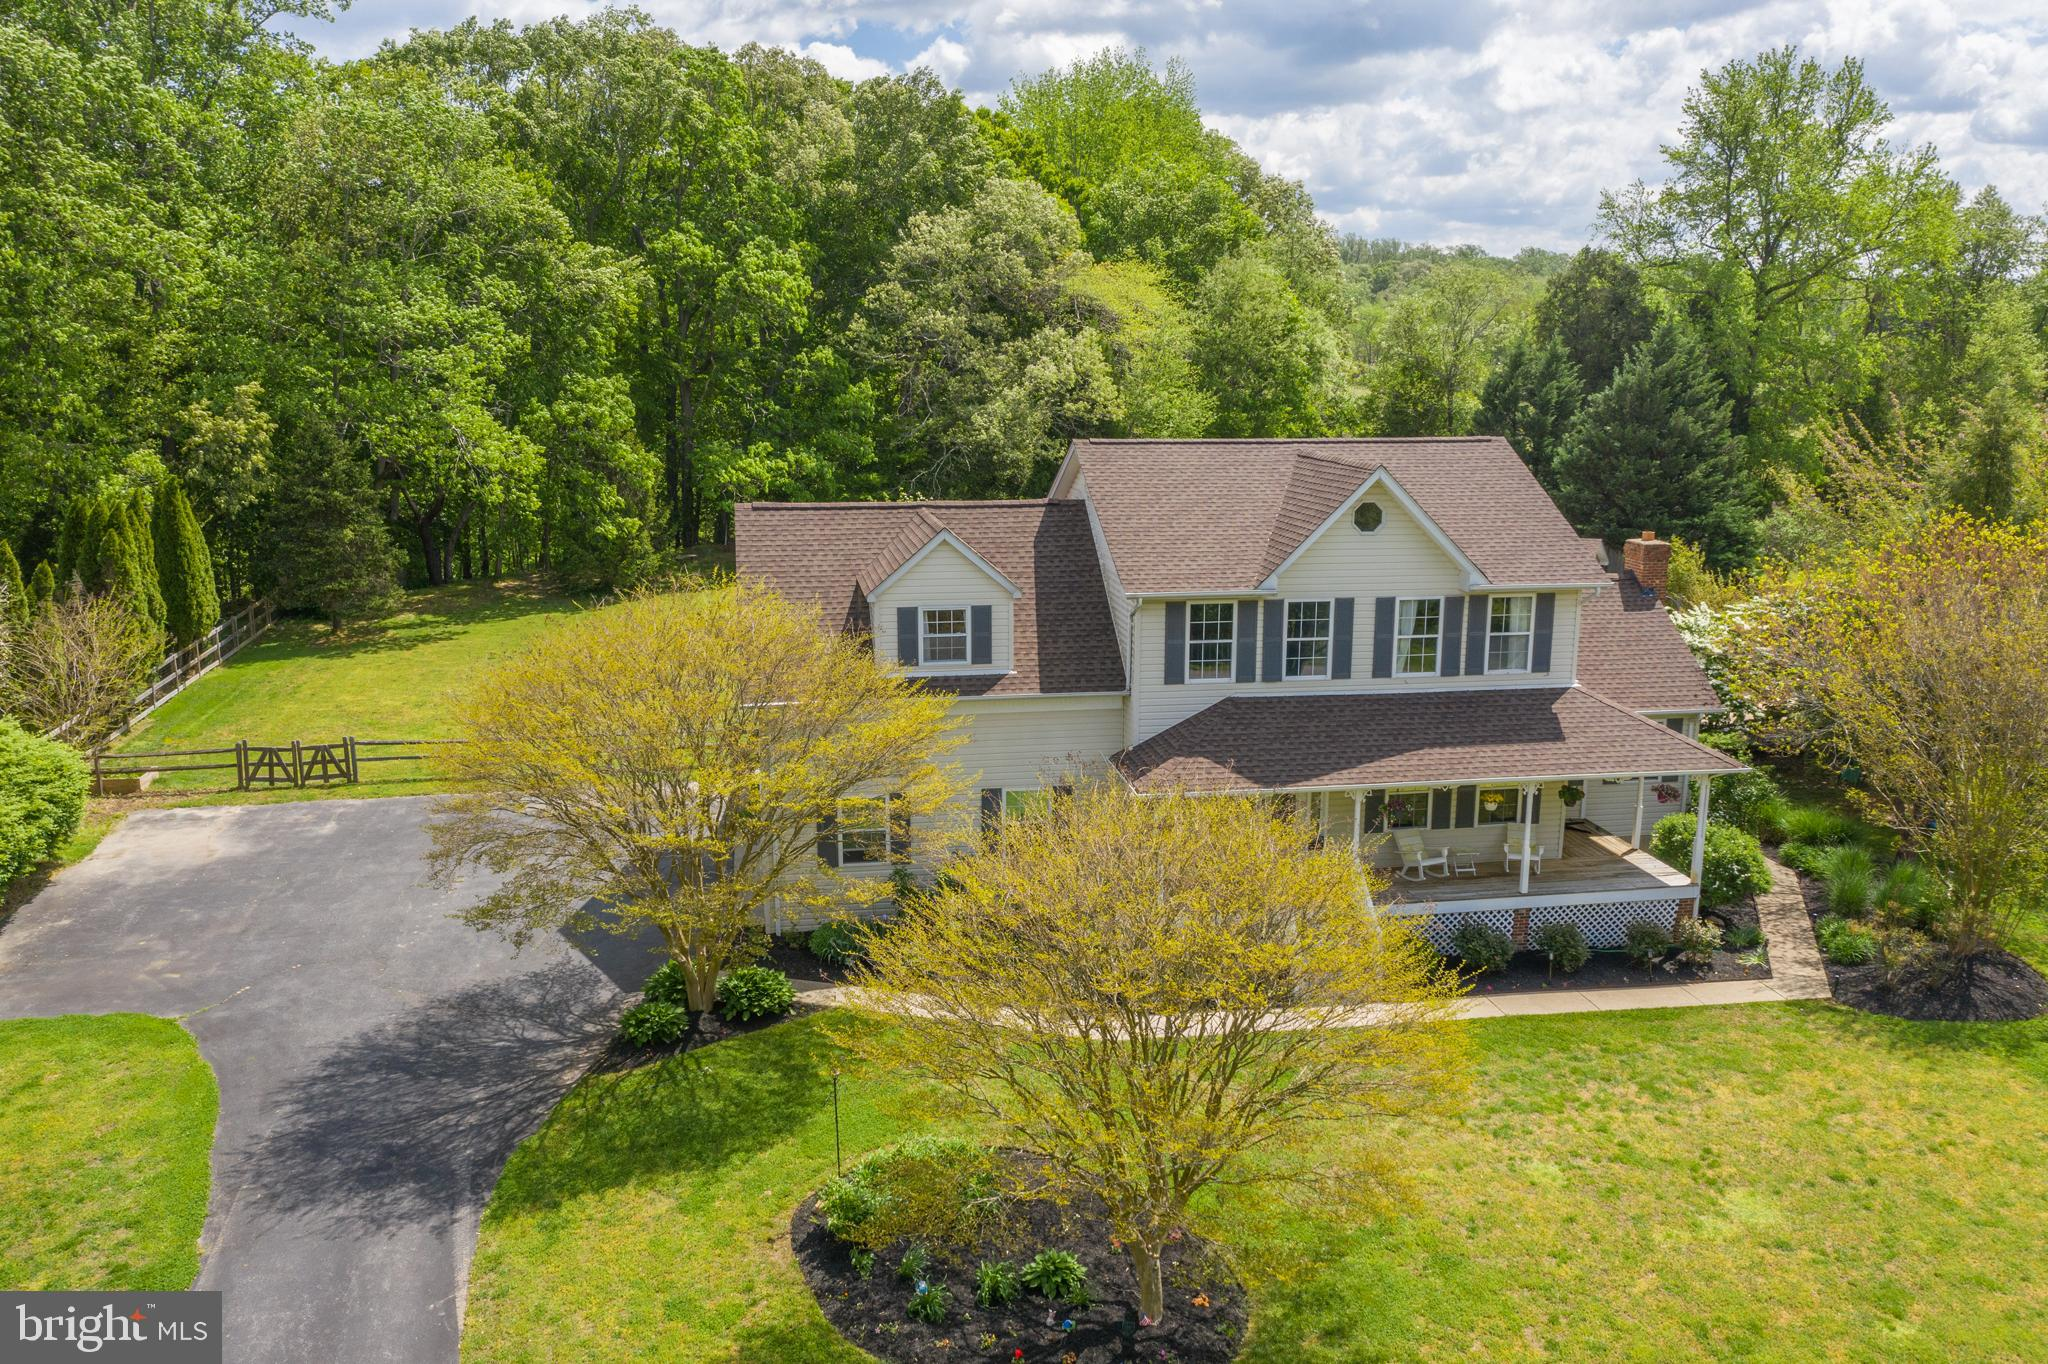 ***OPEN HOUSE Saturday, May 8 from 10 AM- 1 PM AND Sunday, May 9 from 11 AM- 1 PM. Only minutes from